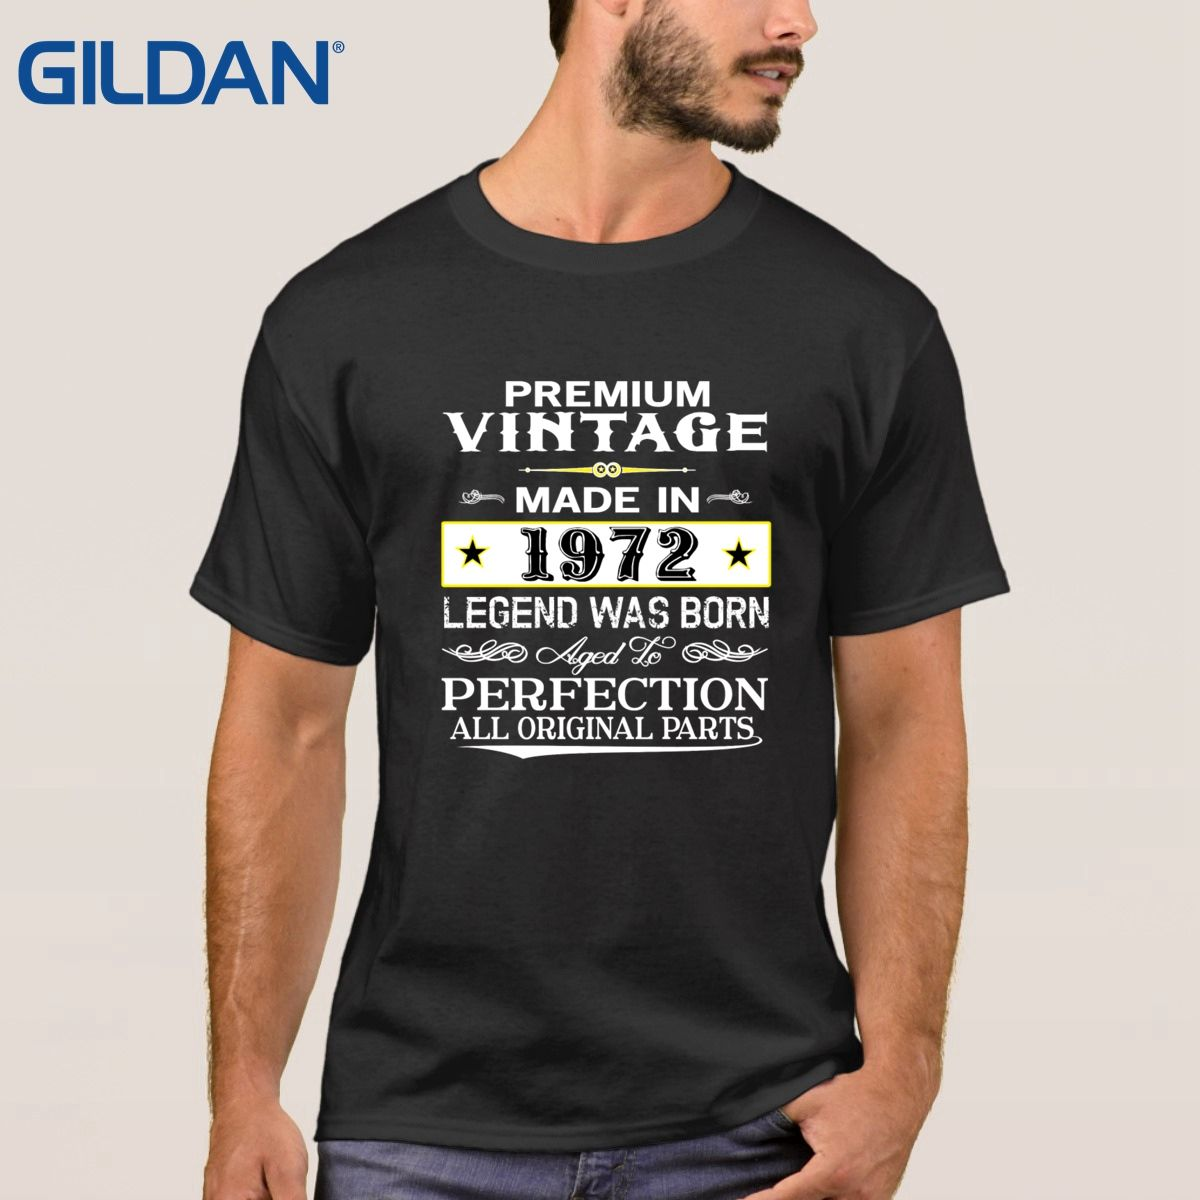 Made in 1972 Born 45th Year Birthday Age Present Vintage Tricolor t shirts mans Fashion Customize t shirts Size shirt design